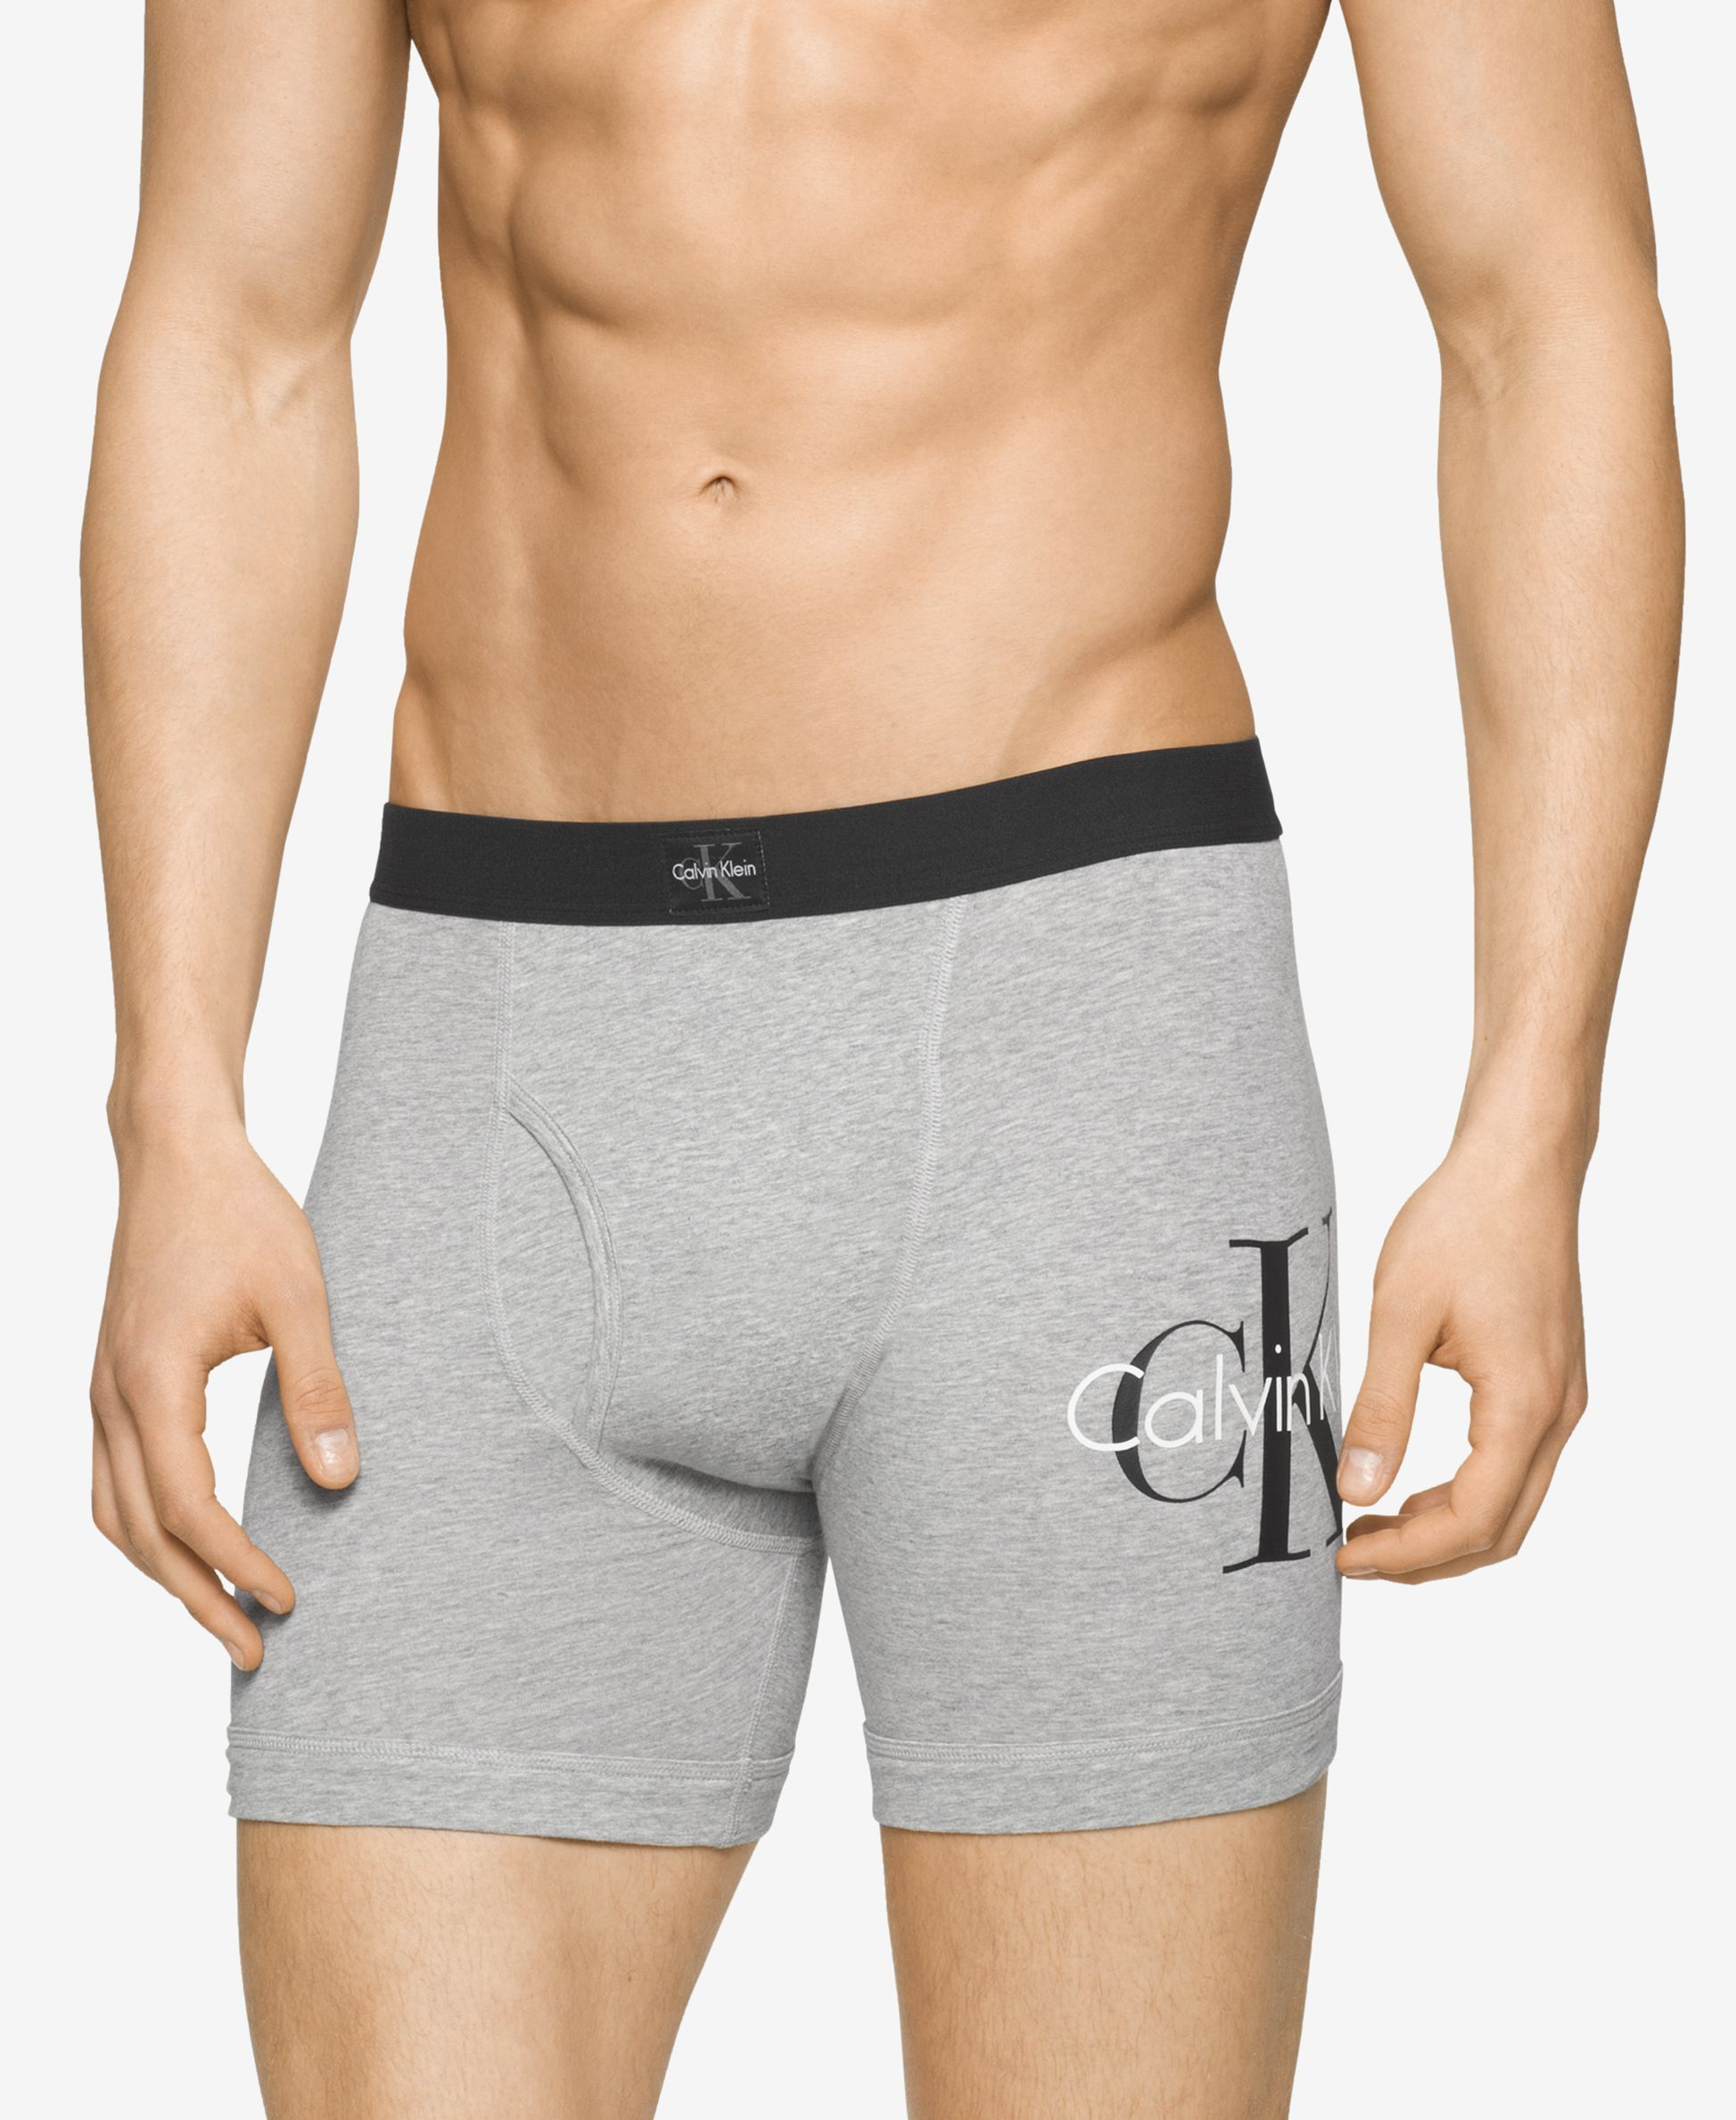 A basic takes on signature style in these Ck Origins boxer briefs from Calvin  Klein a6808511f4